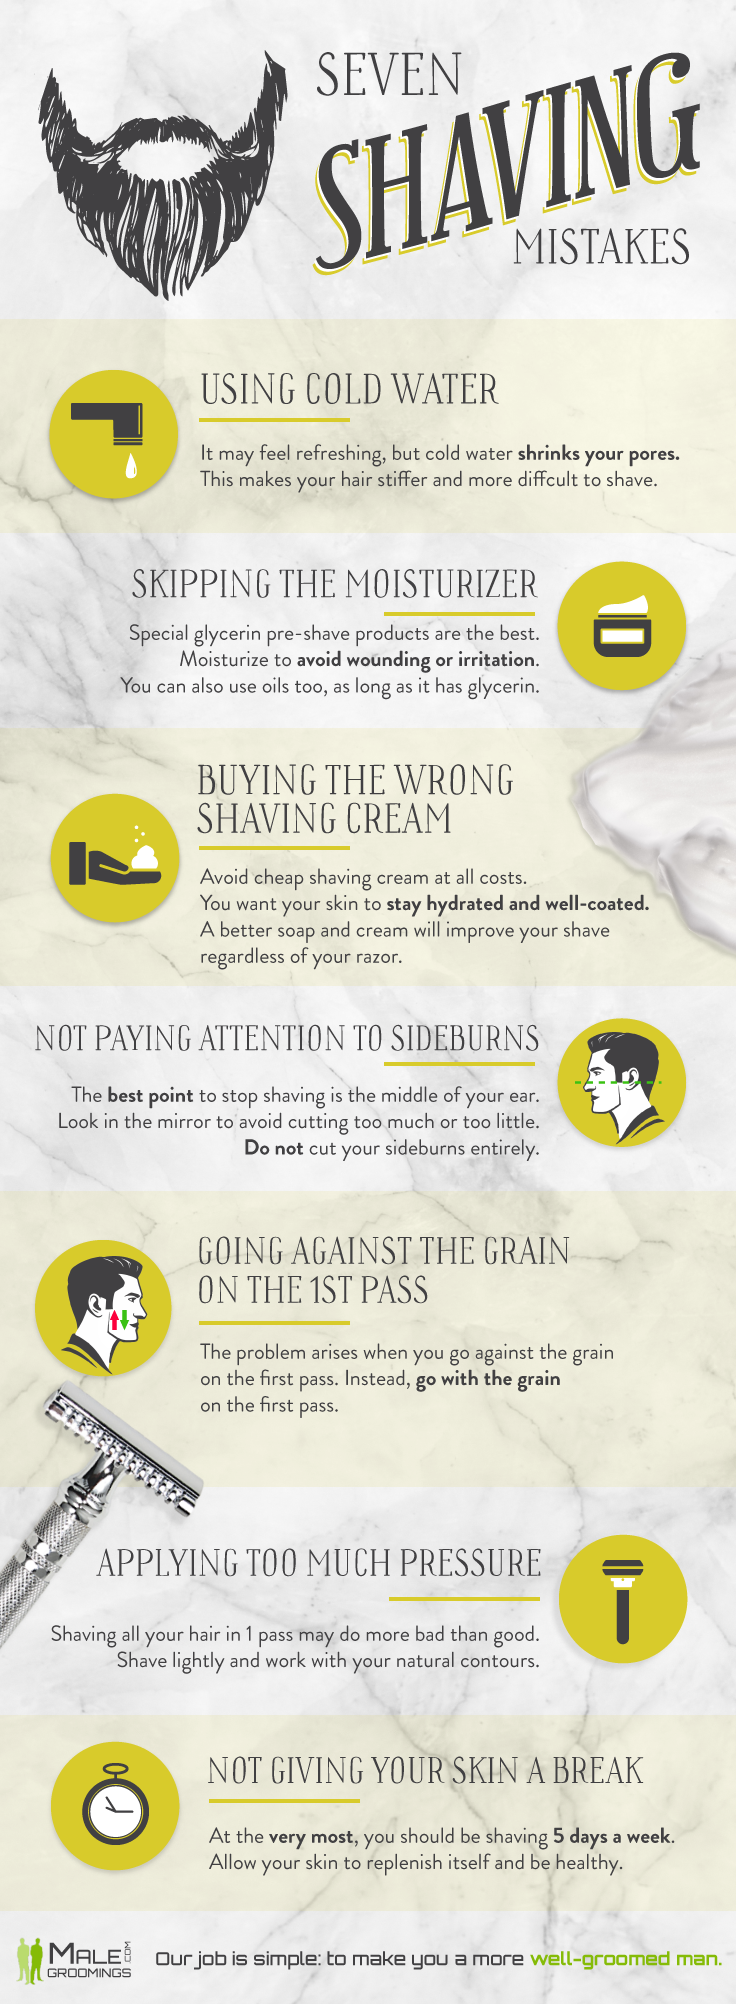 7-shaving-mistakes-infographic-plaza